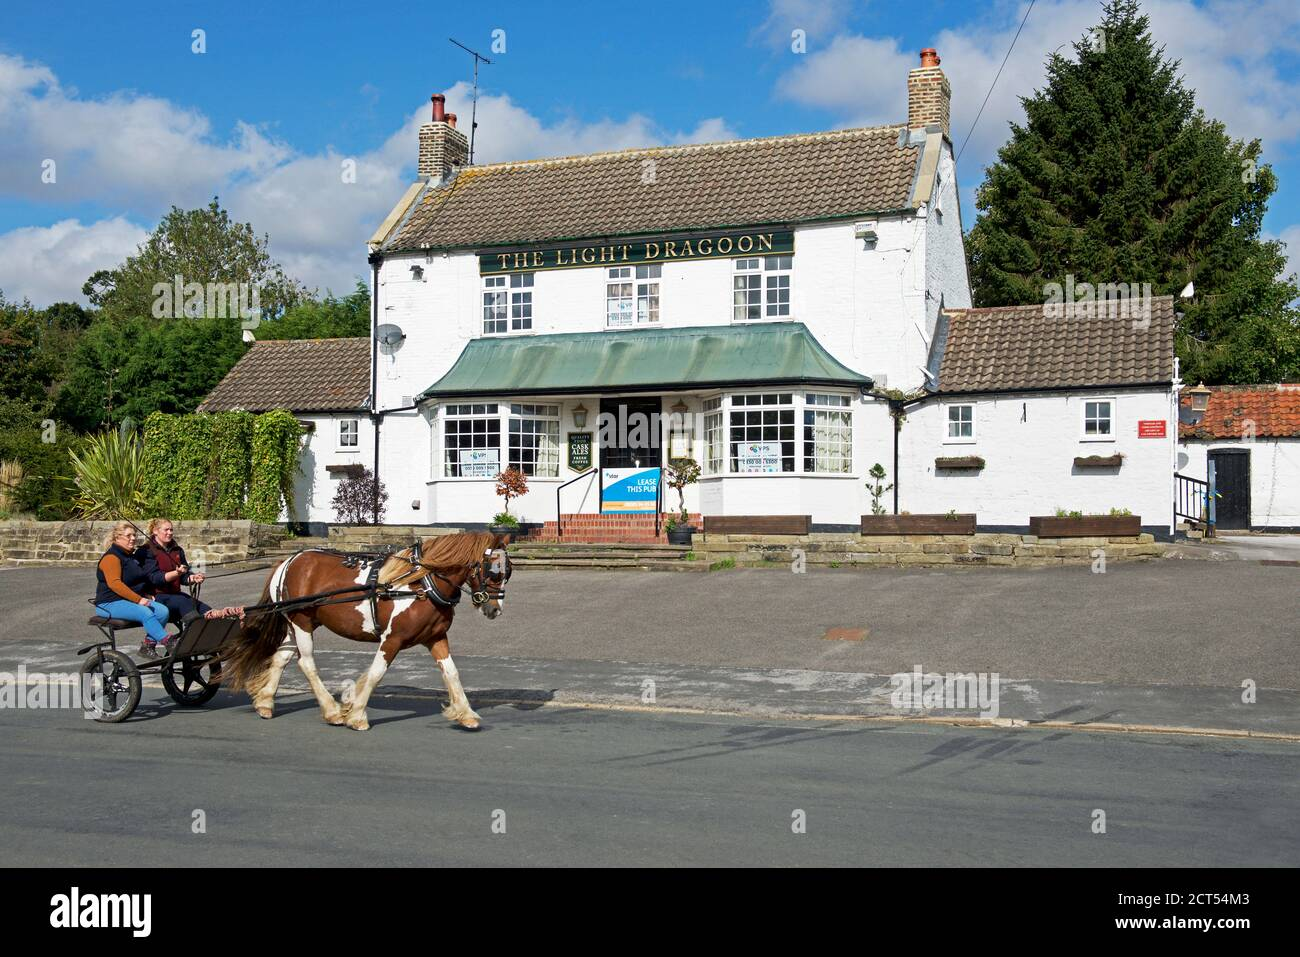 two-women-on-horse-and-trap-in-the-village-of-etton-east-yorkshire-england-uk-2CT54M3.jpg